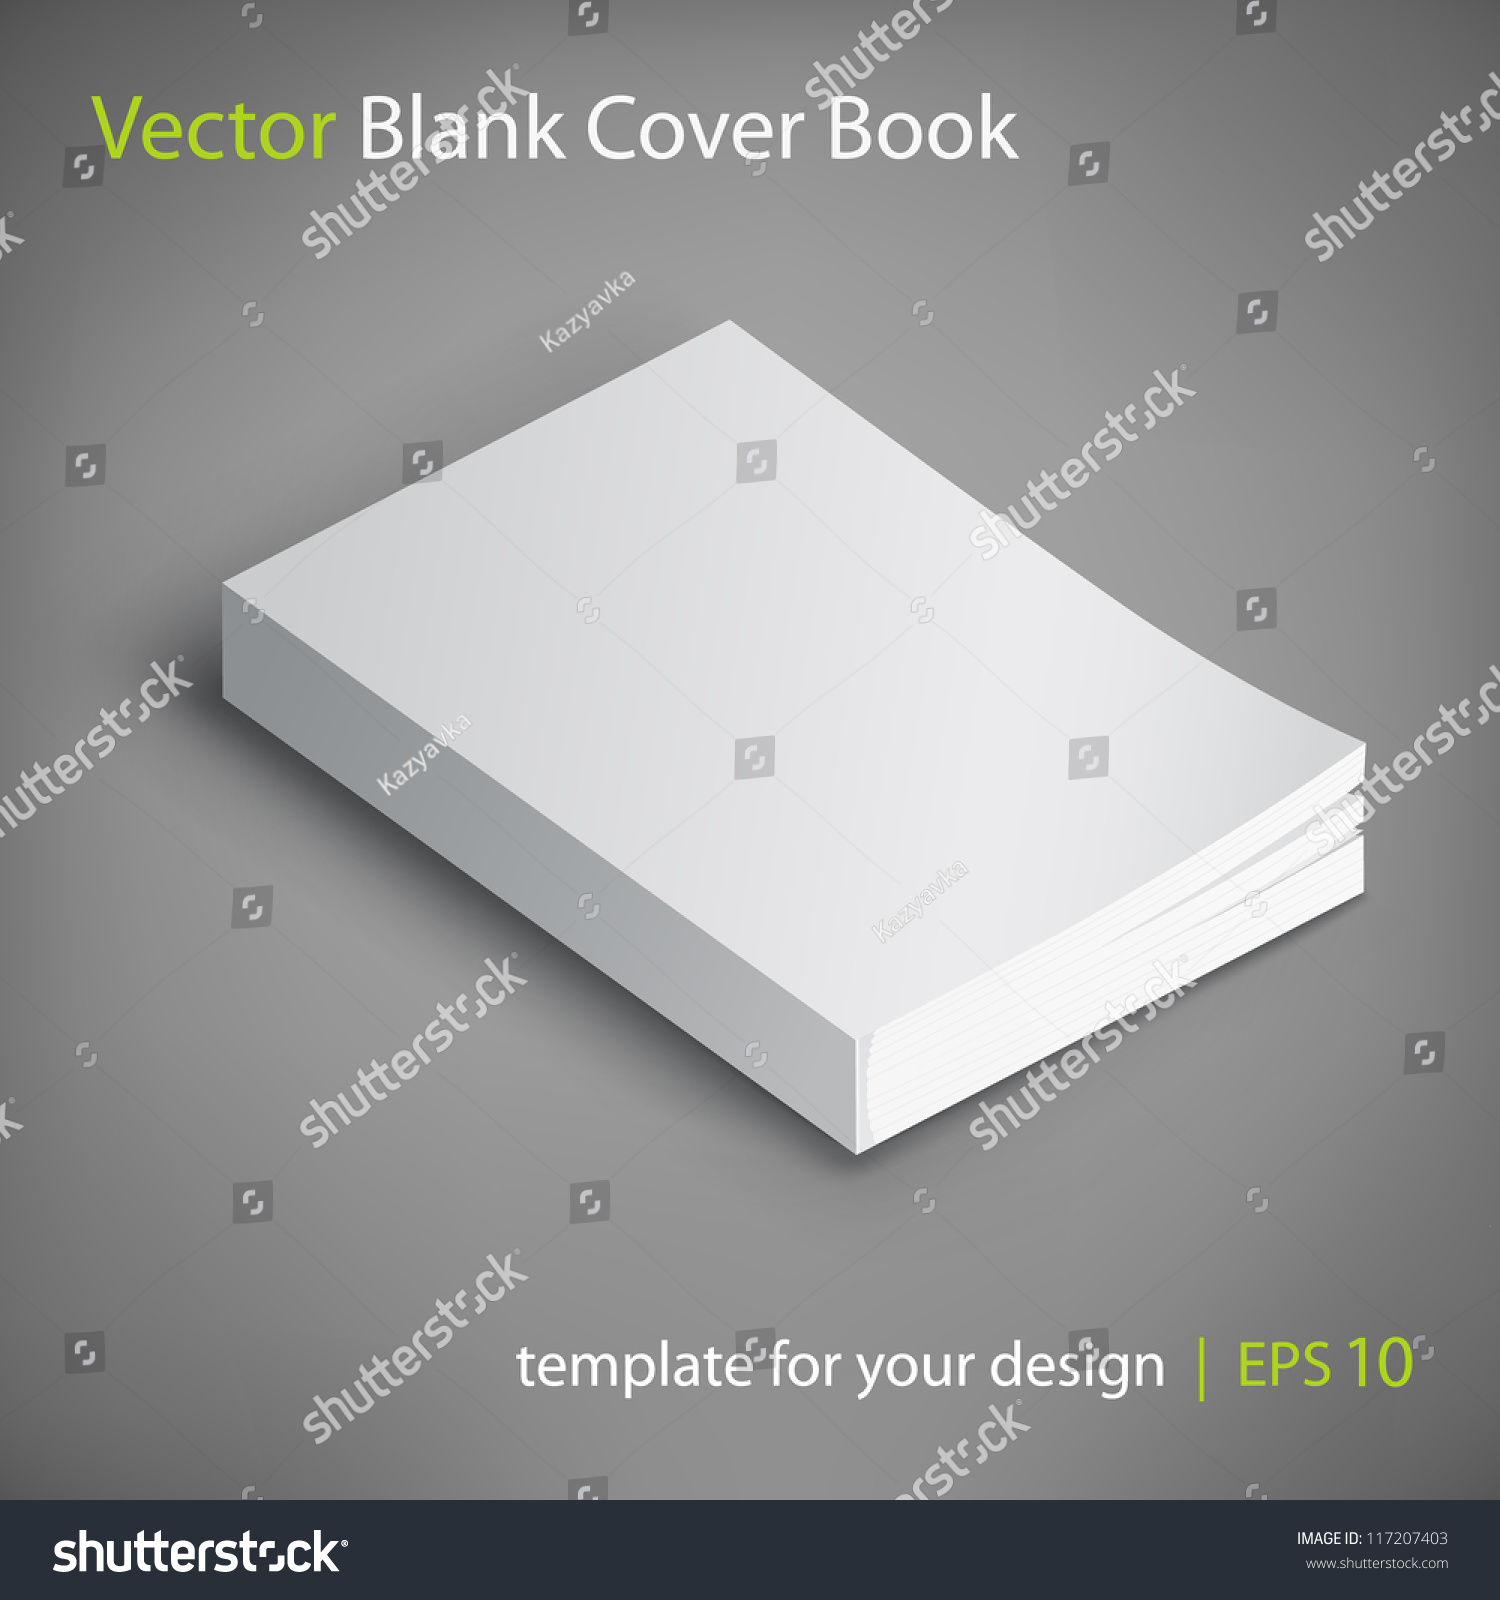 Blank Book Cover Vector Illustration Free ~ Blank book cover vector illustration template for your